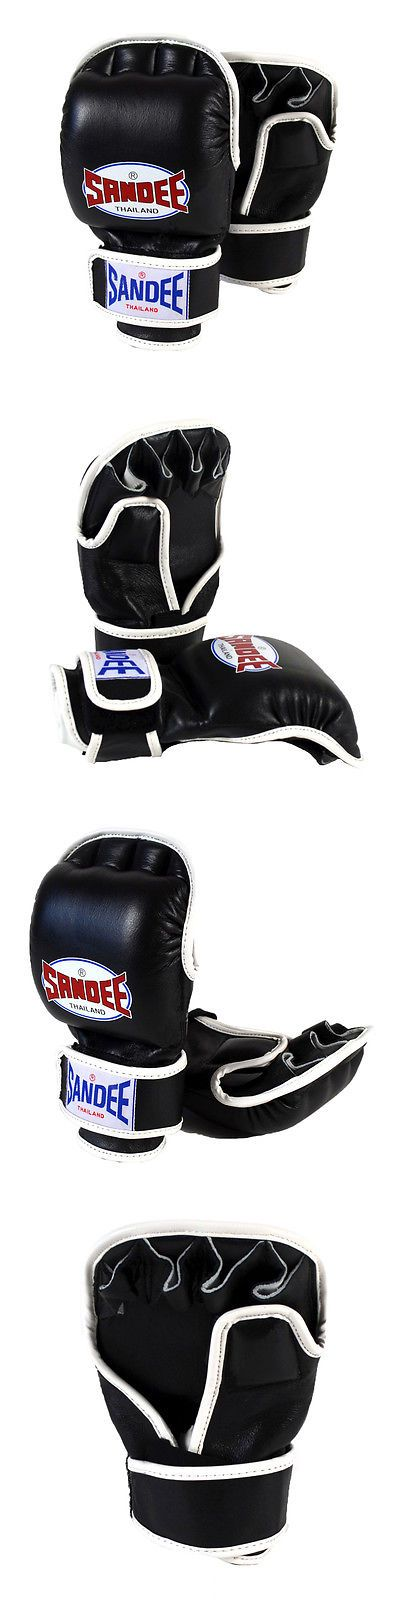 Gloves - Martial Arts 97042: Sandee Leather Mma Sparring Glove - Black/White BUY IT NOW ONLY: $44.95